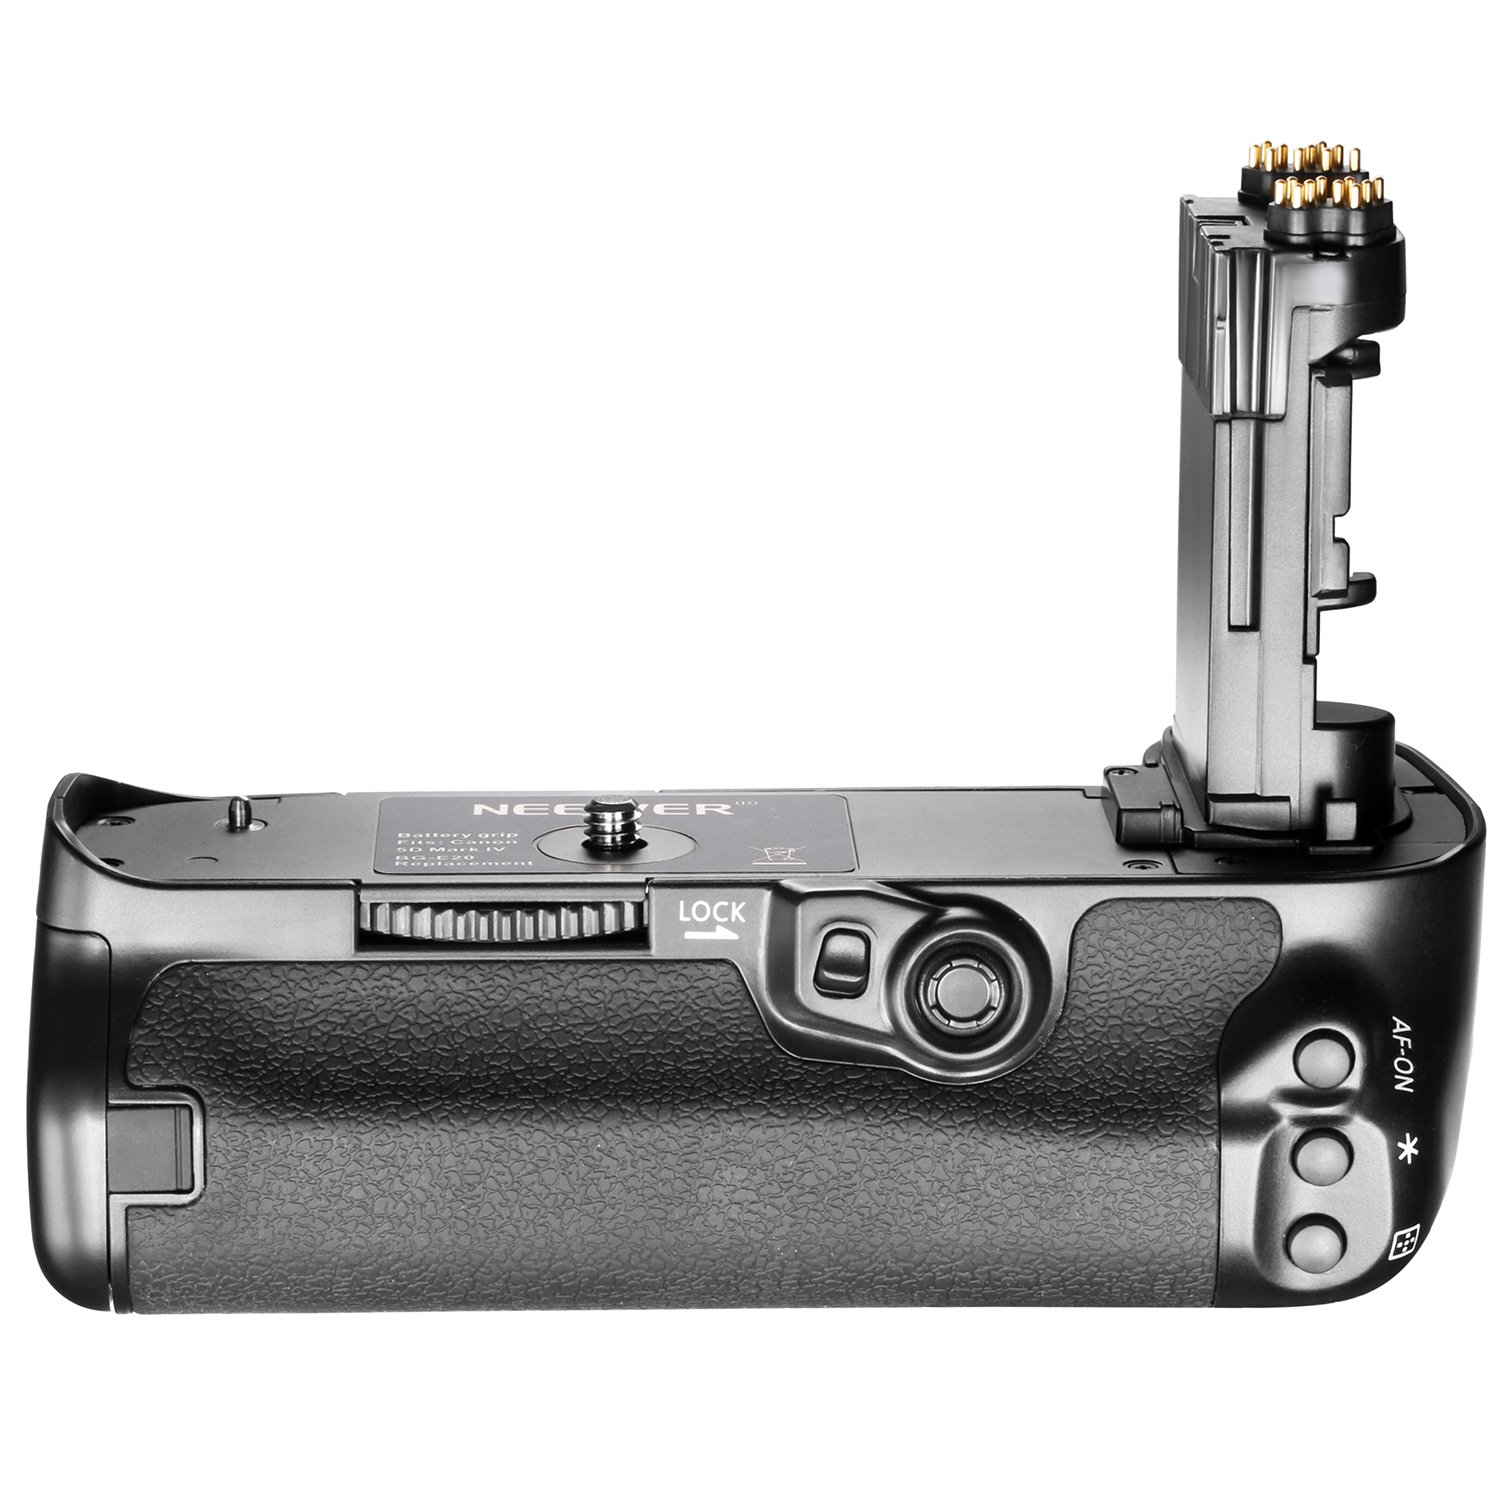 Neewer Battery Grip for Canon 5D Mark IV Camera, Replacement for Canon BG-E20, Compatible with LP-E6 LP-E6N Batteries by Neewer